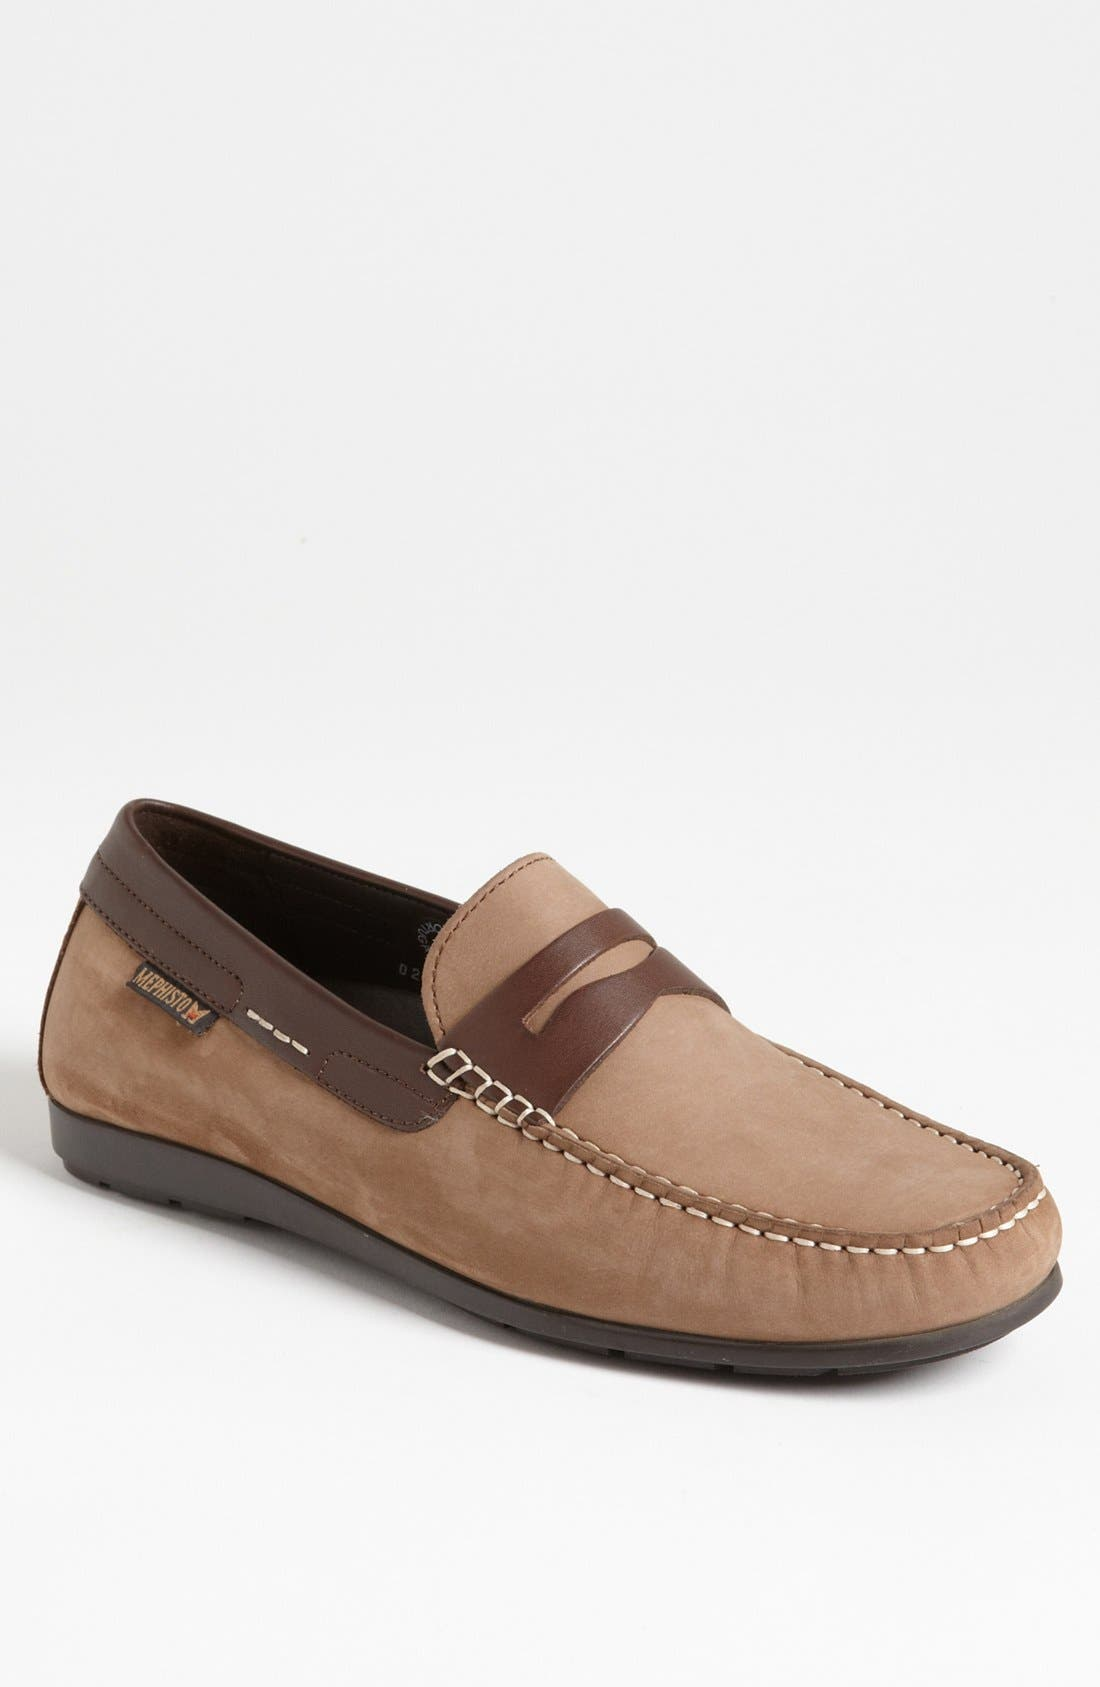 Alternate Image 1 Selected - Mephisto 'Alyon' Penny Loafer